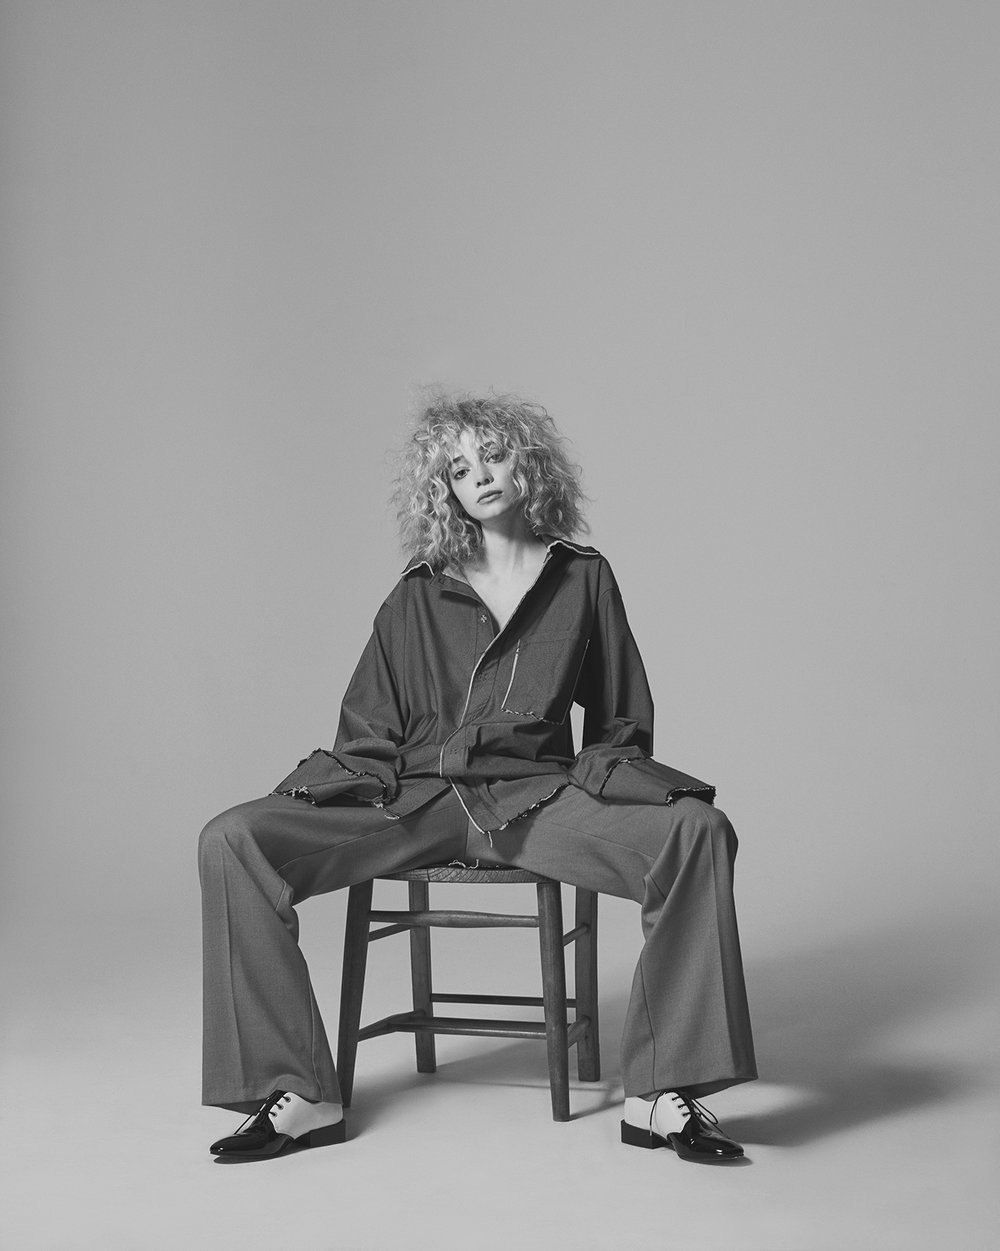 Grey oversized shirt LAERKE ANDERSEN, Wide legged pants JAMES LAKELAND, Two tone loafers ROGUES MATILDA.